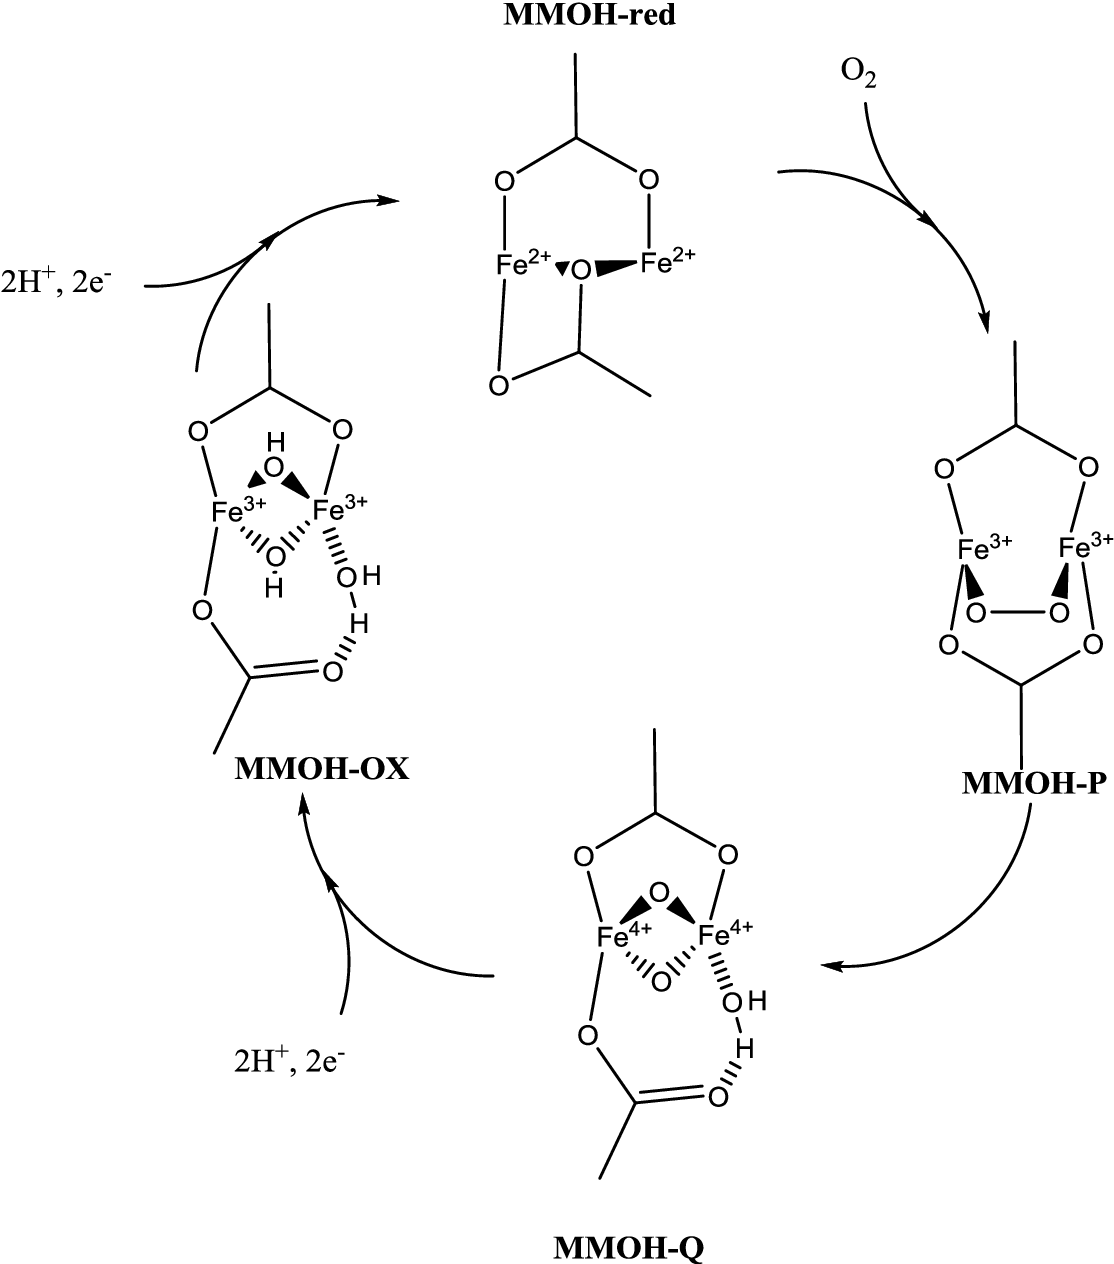 PDF] Structure, function and mechanism of the alternative oxidases ...